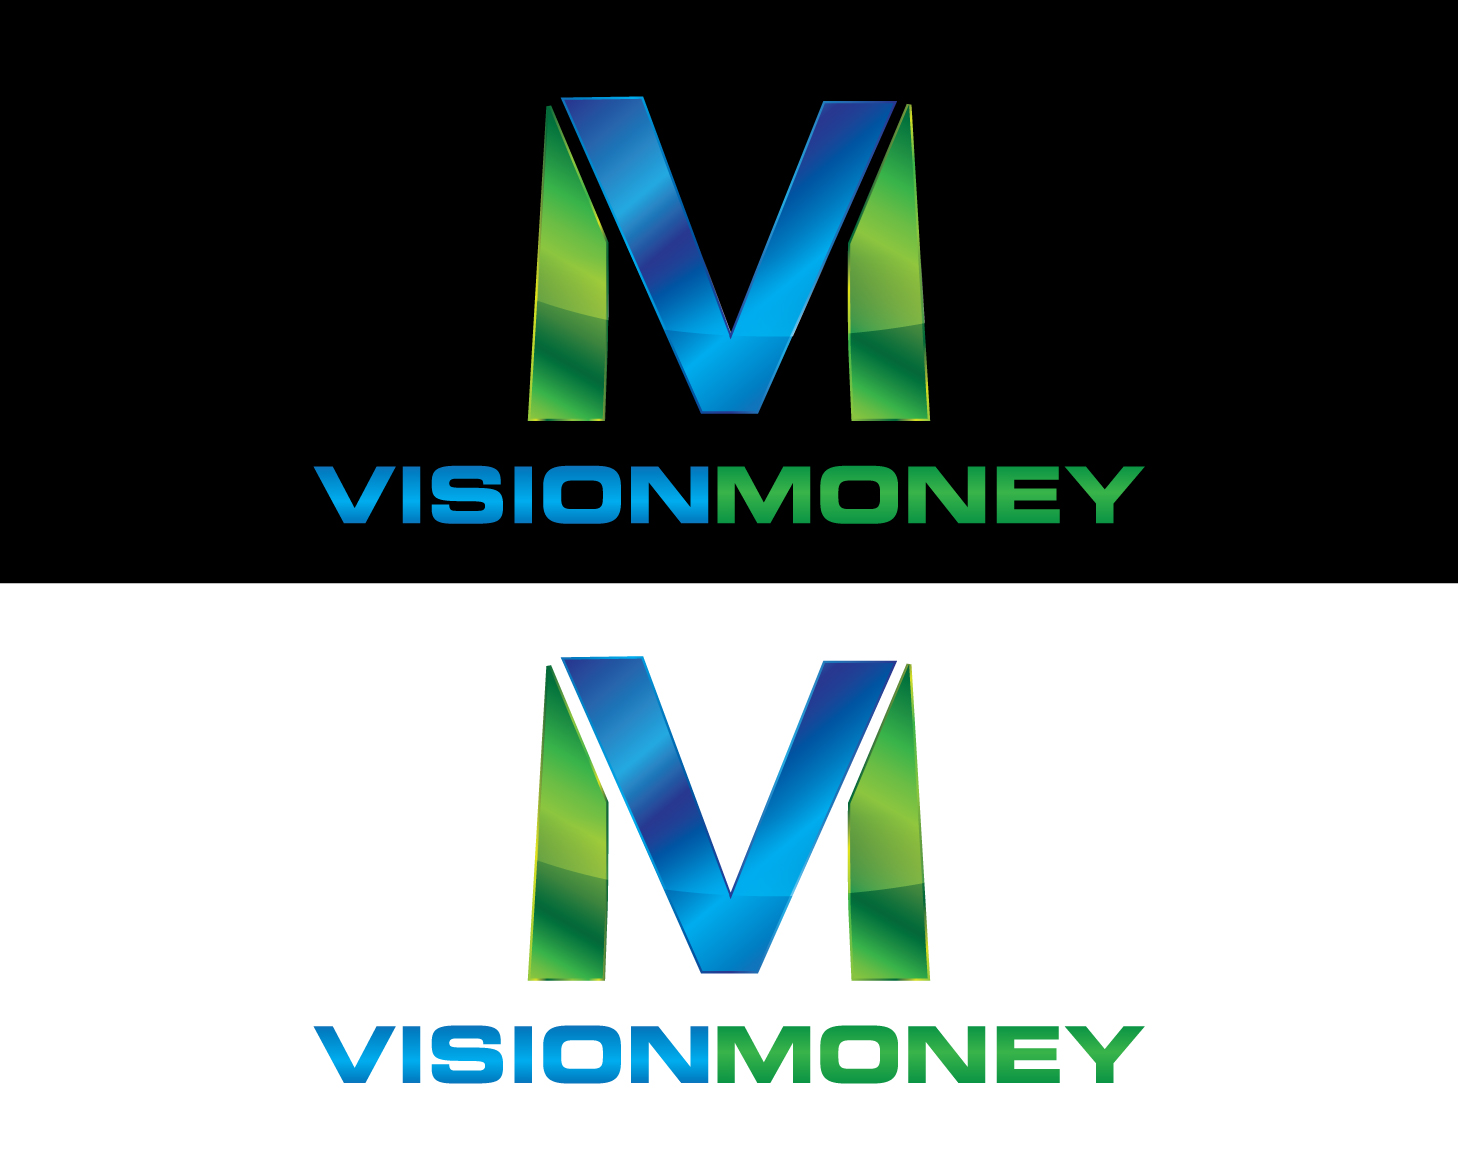 Logo Design by rA - Entry No. 52 in the Logo Design Contest Captivating Logo Design for VISION MONEY.